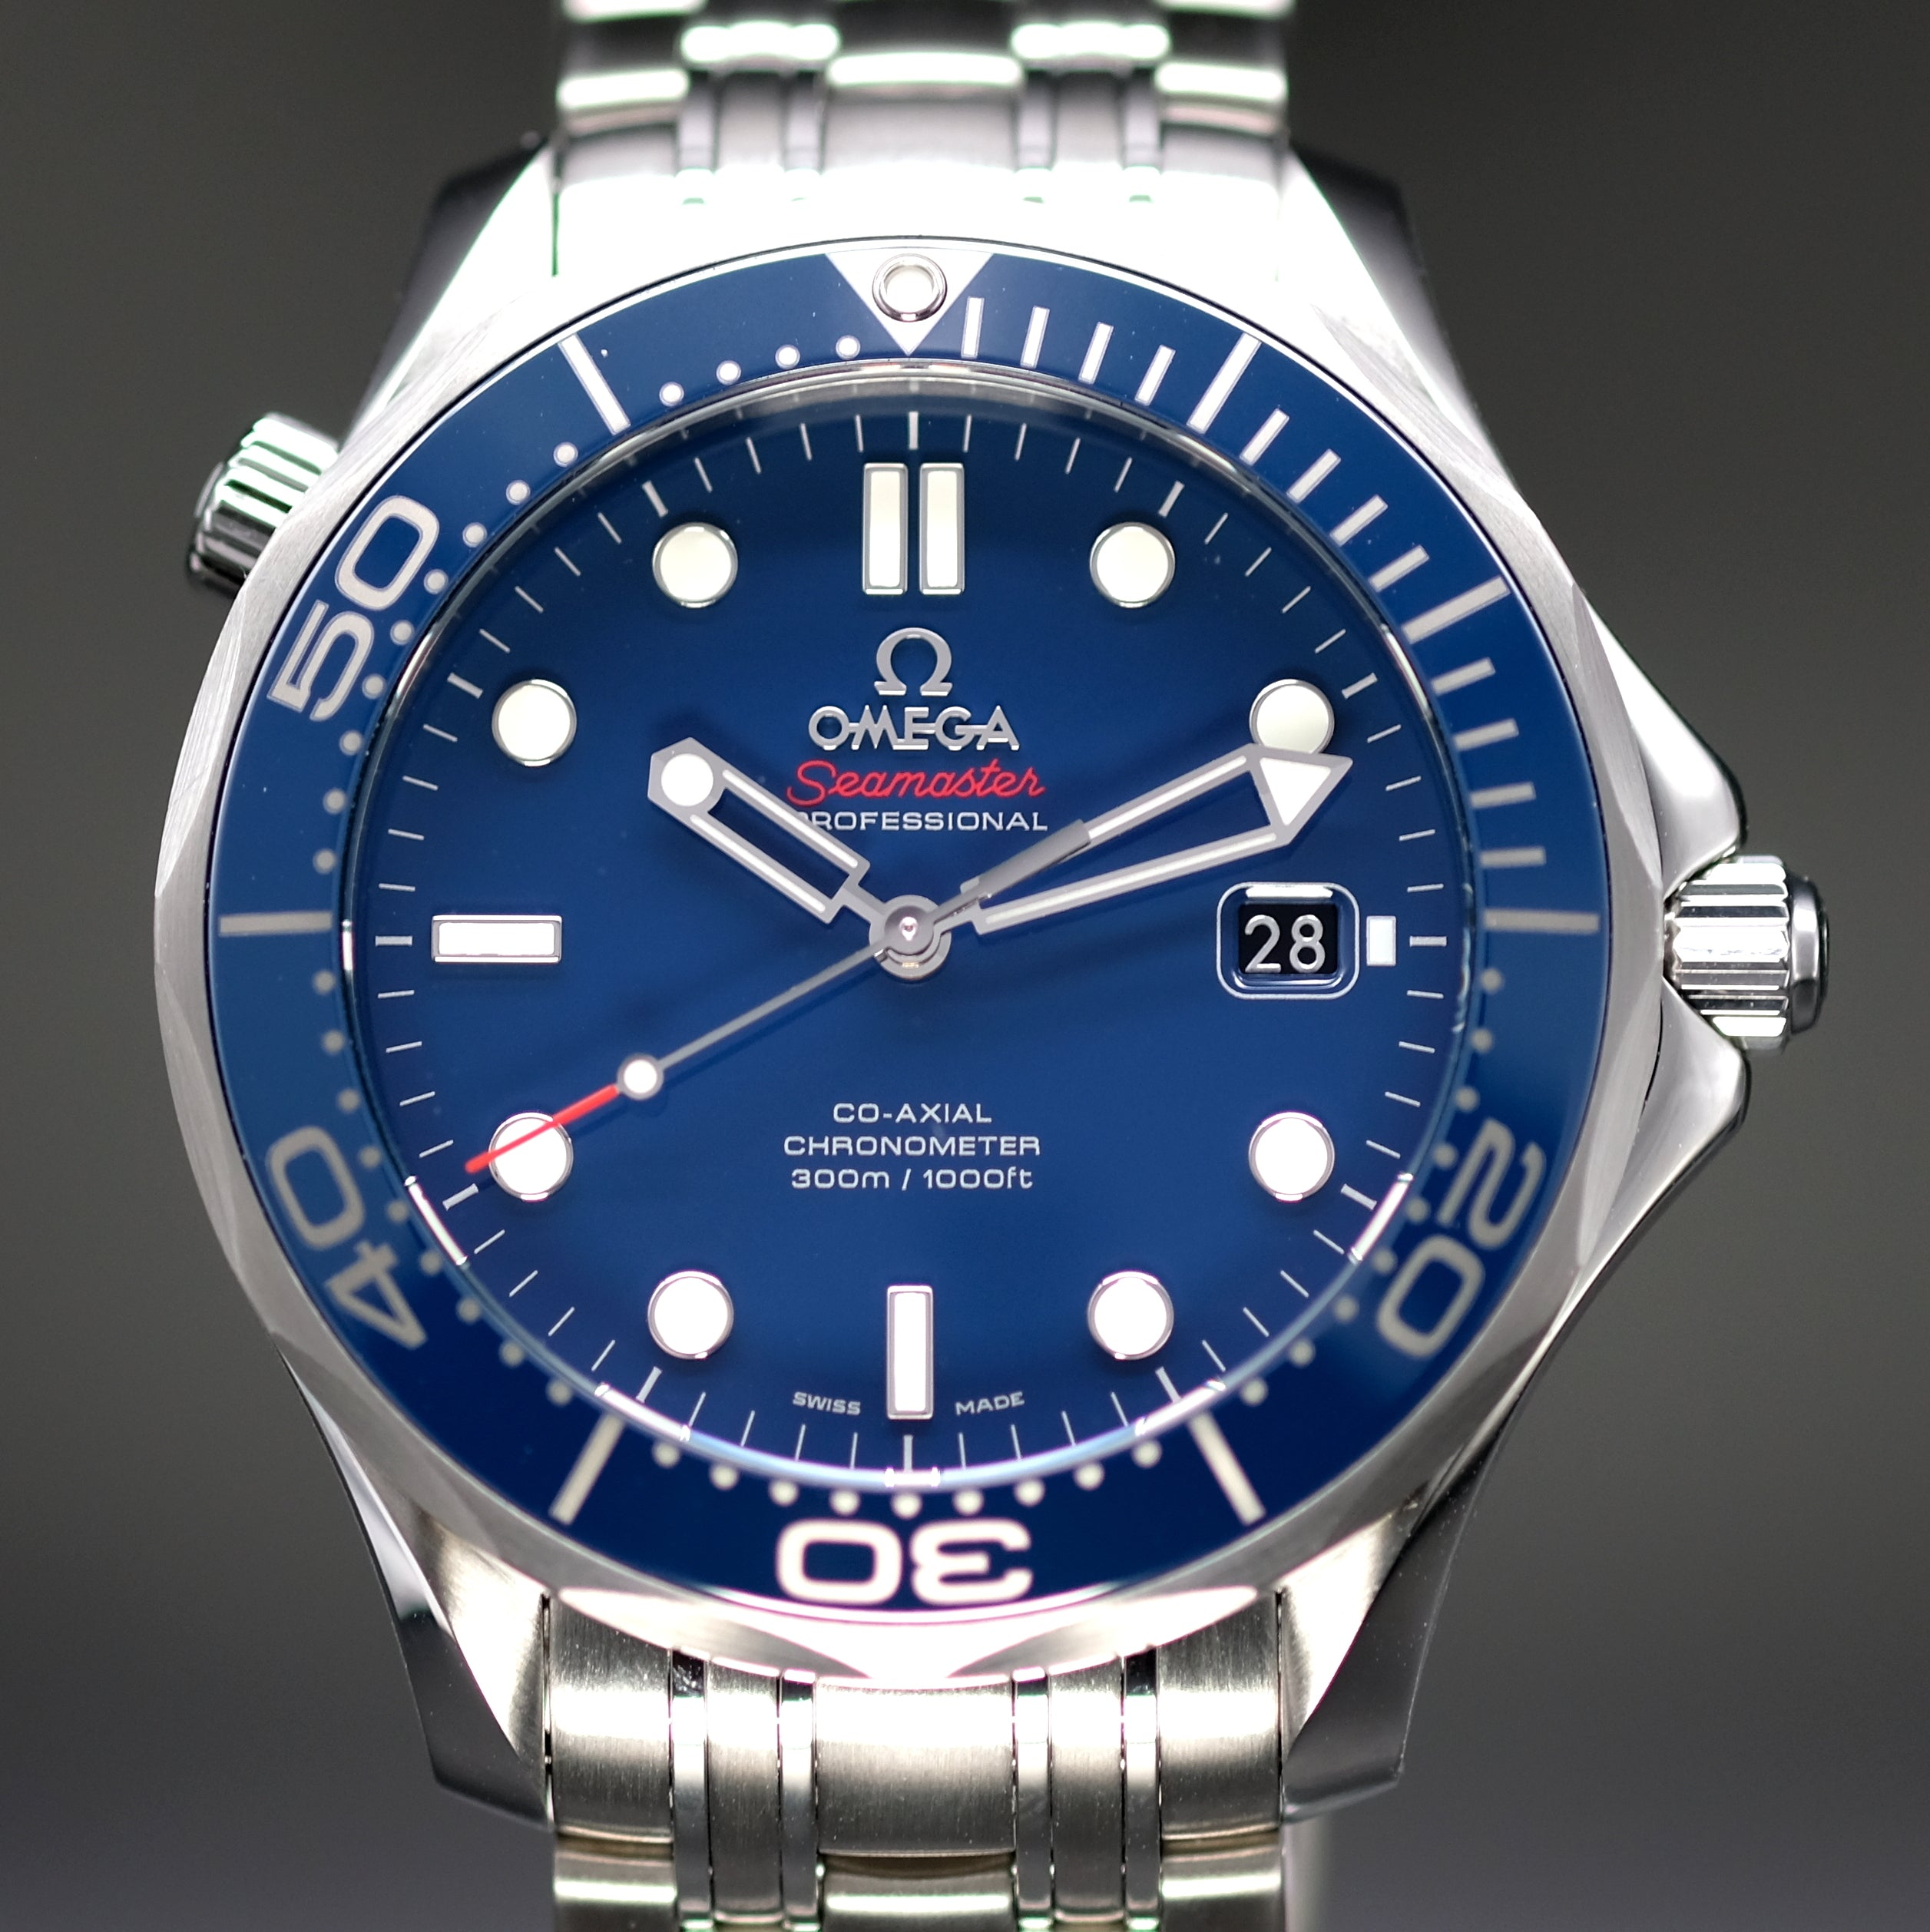 [Brand New Watch] Omega Seamaster Diver 300m Co-Axial 41m 212.30.41.20.03.001